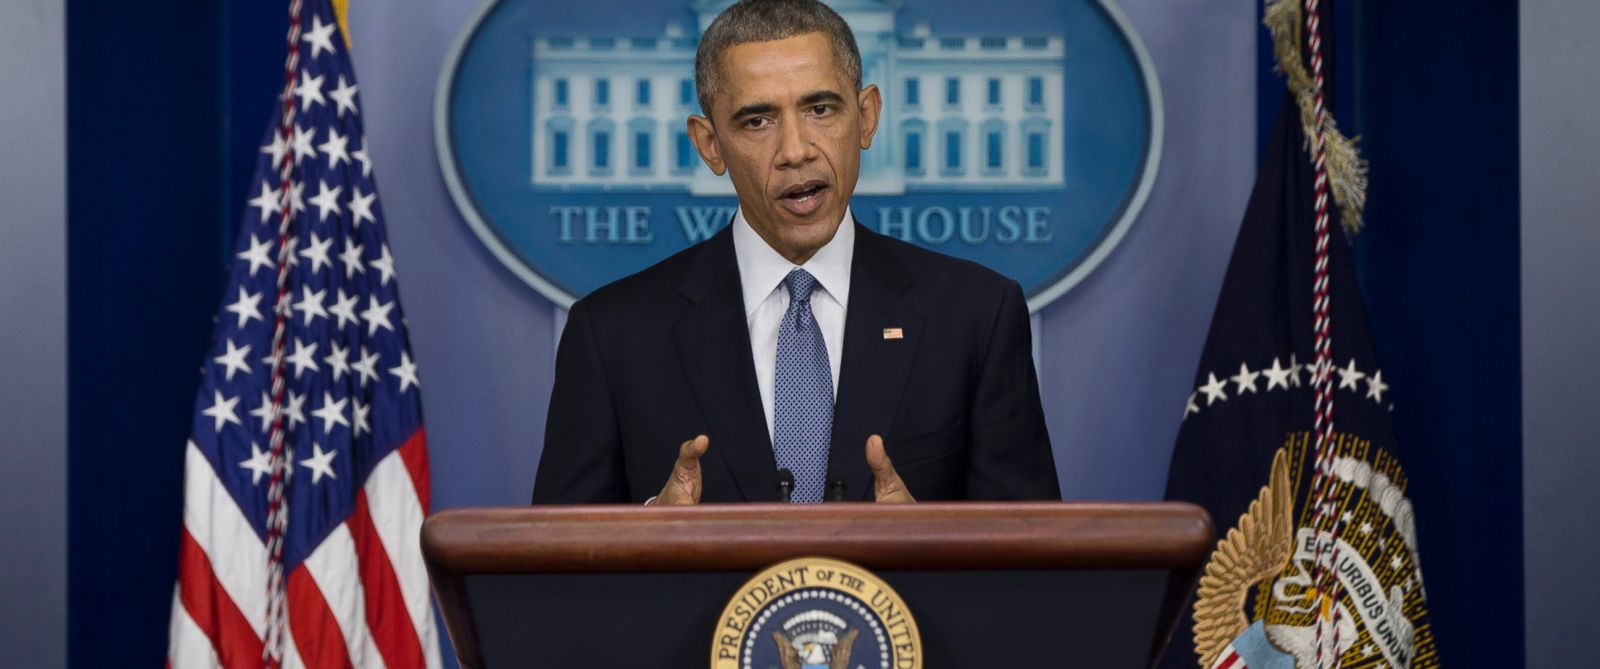 PHOTO: President Barack Obama speaks during a news conference in the Brady Press Briefing Room of the White House in Washington, Dec. 19, 2014.